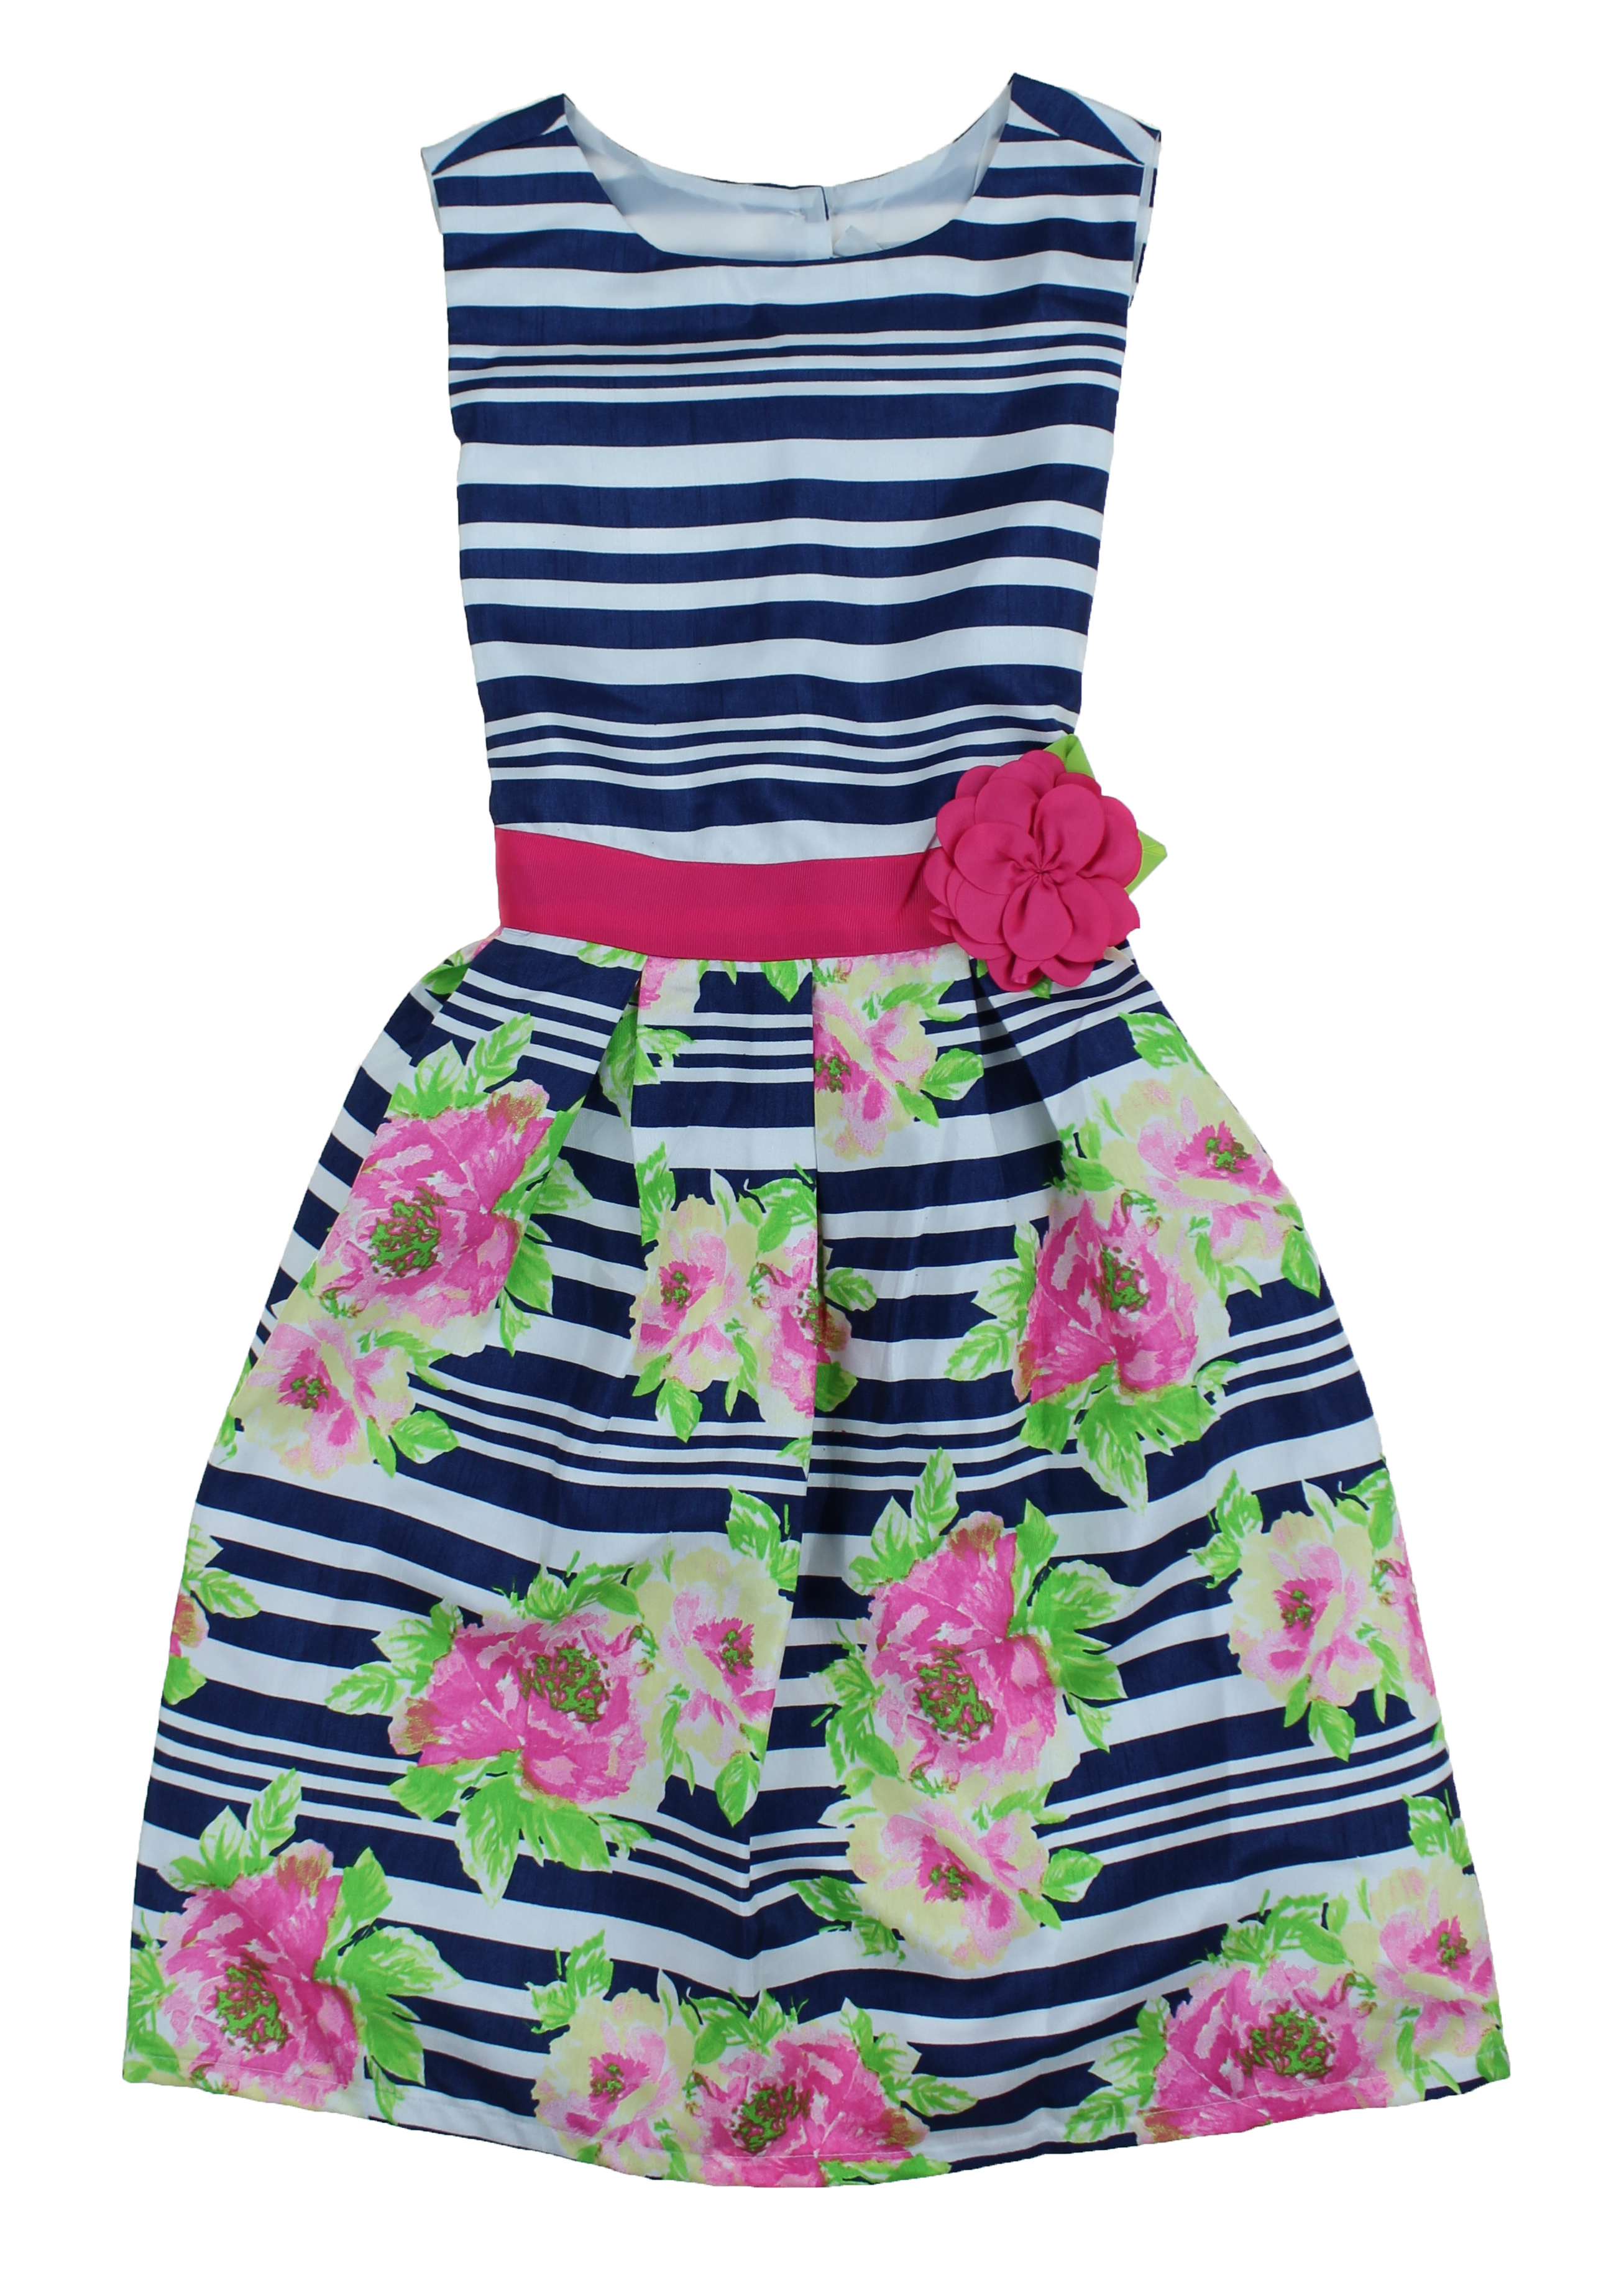 Jona Michelle Girls Semi Formal Holiday Colorful Spring